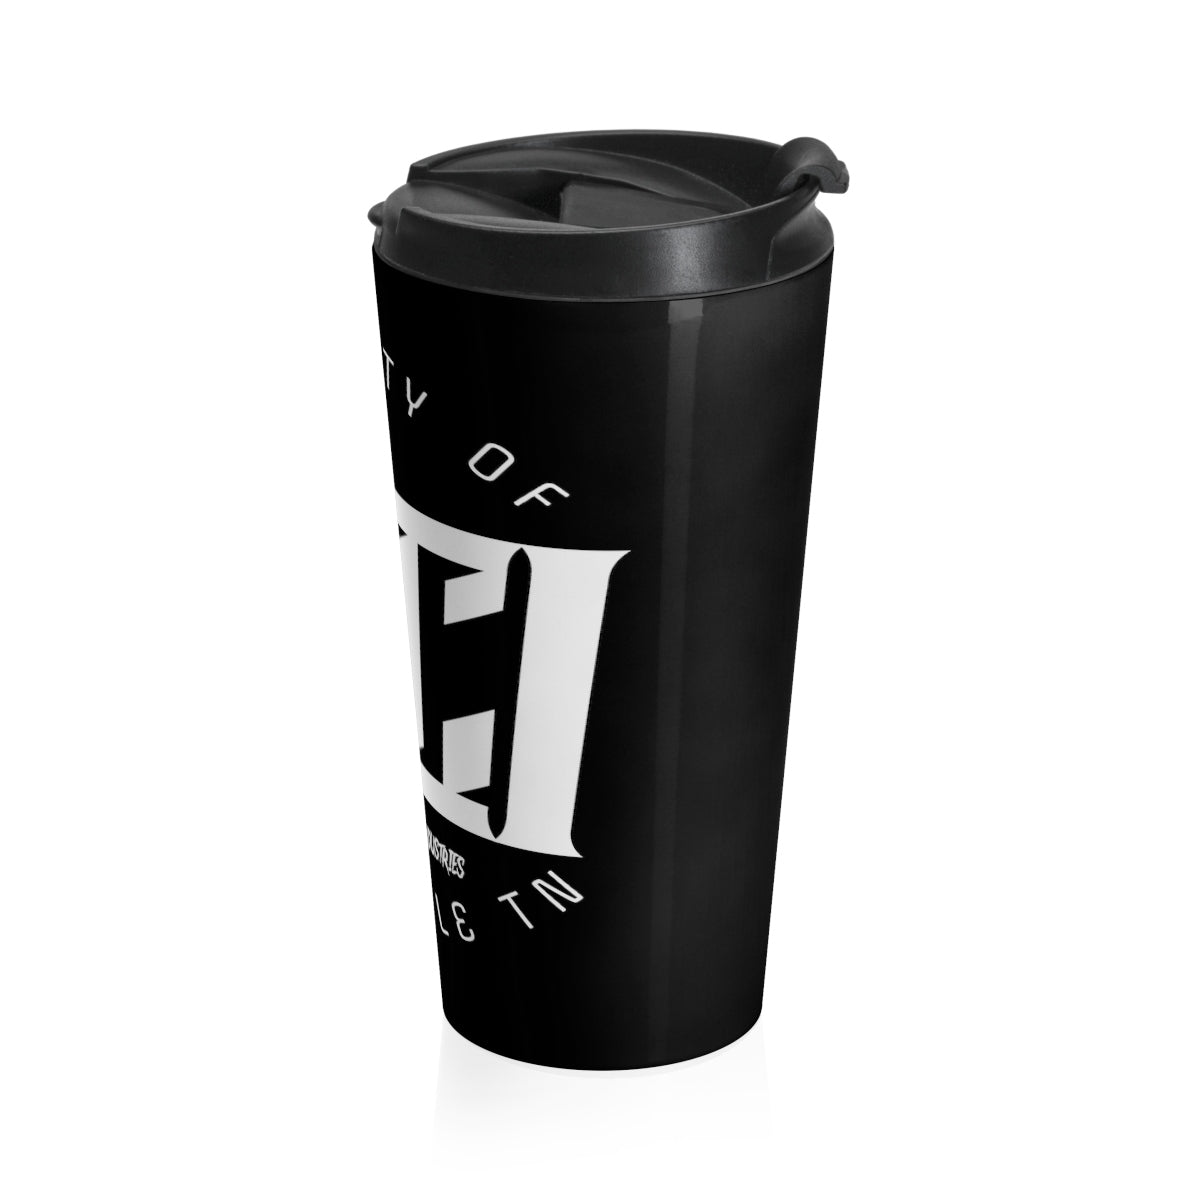 Property Of WCI/Stainless Steel Travel Mug